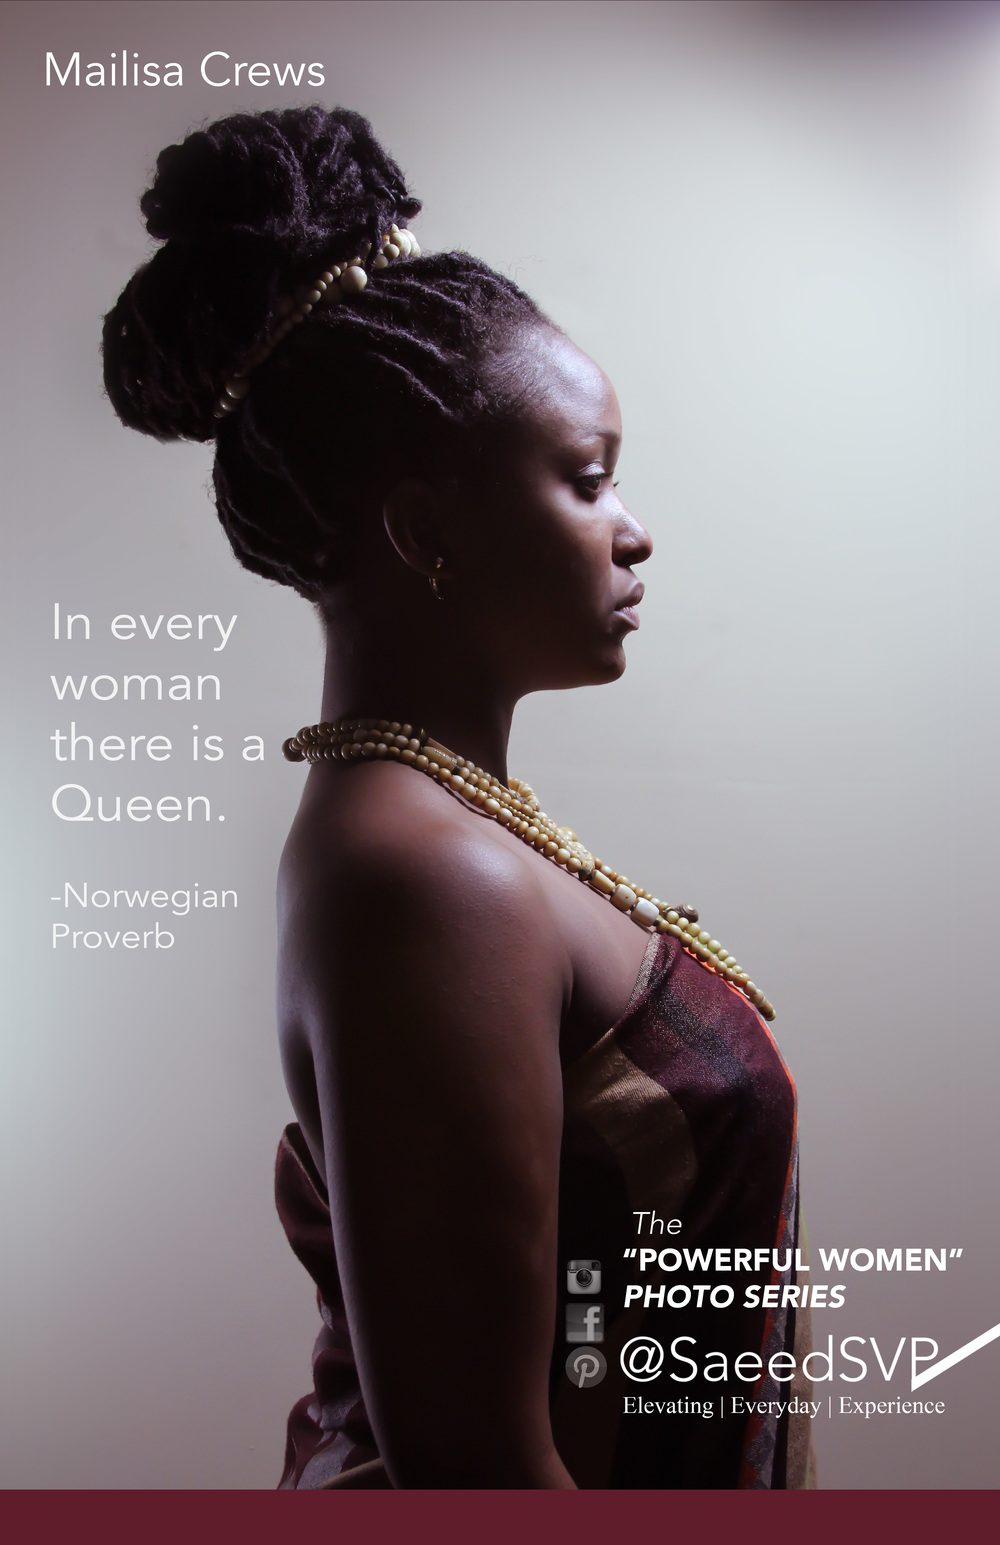 What Queen's Do you know?    Join the conversation as we discover Powerful Women and acknowledge the ones we know.  The woman above has been acknowledged for her Queen like attributes.  Queen's are supreme by lineage and have the authority to address pressing issues.    Share this image with a woman you think is applying her authority to make the world a better place using the hashtag  #icTheQueeninU